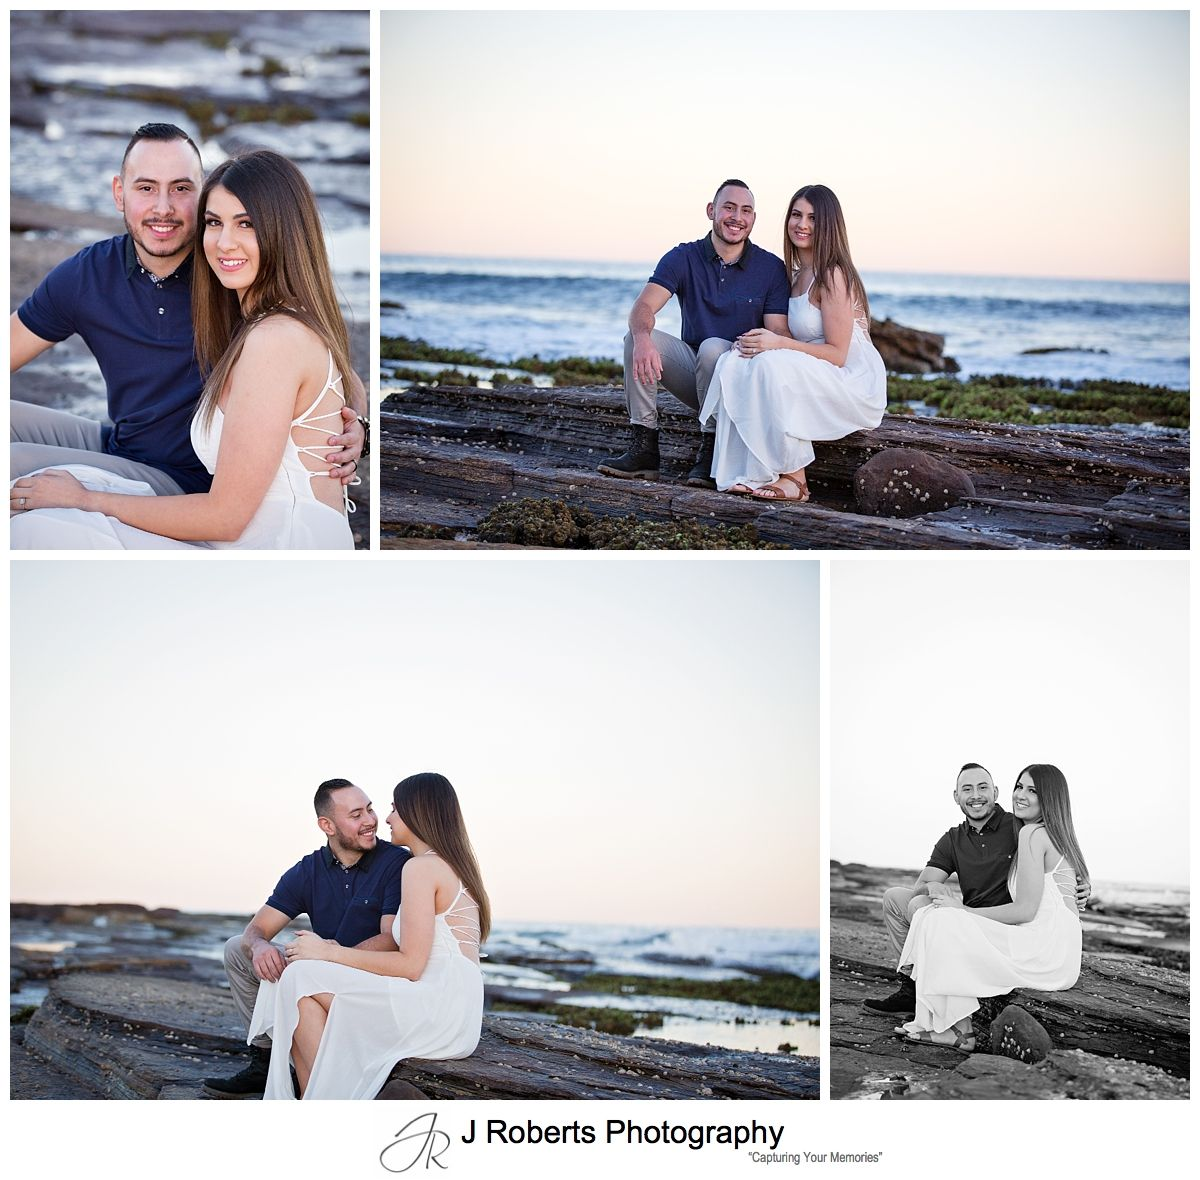 Engagement Portrait Photography Sydney during golden hour at North Narrabeen Rockpool